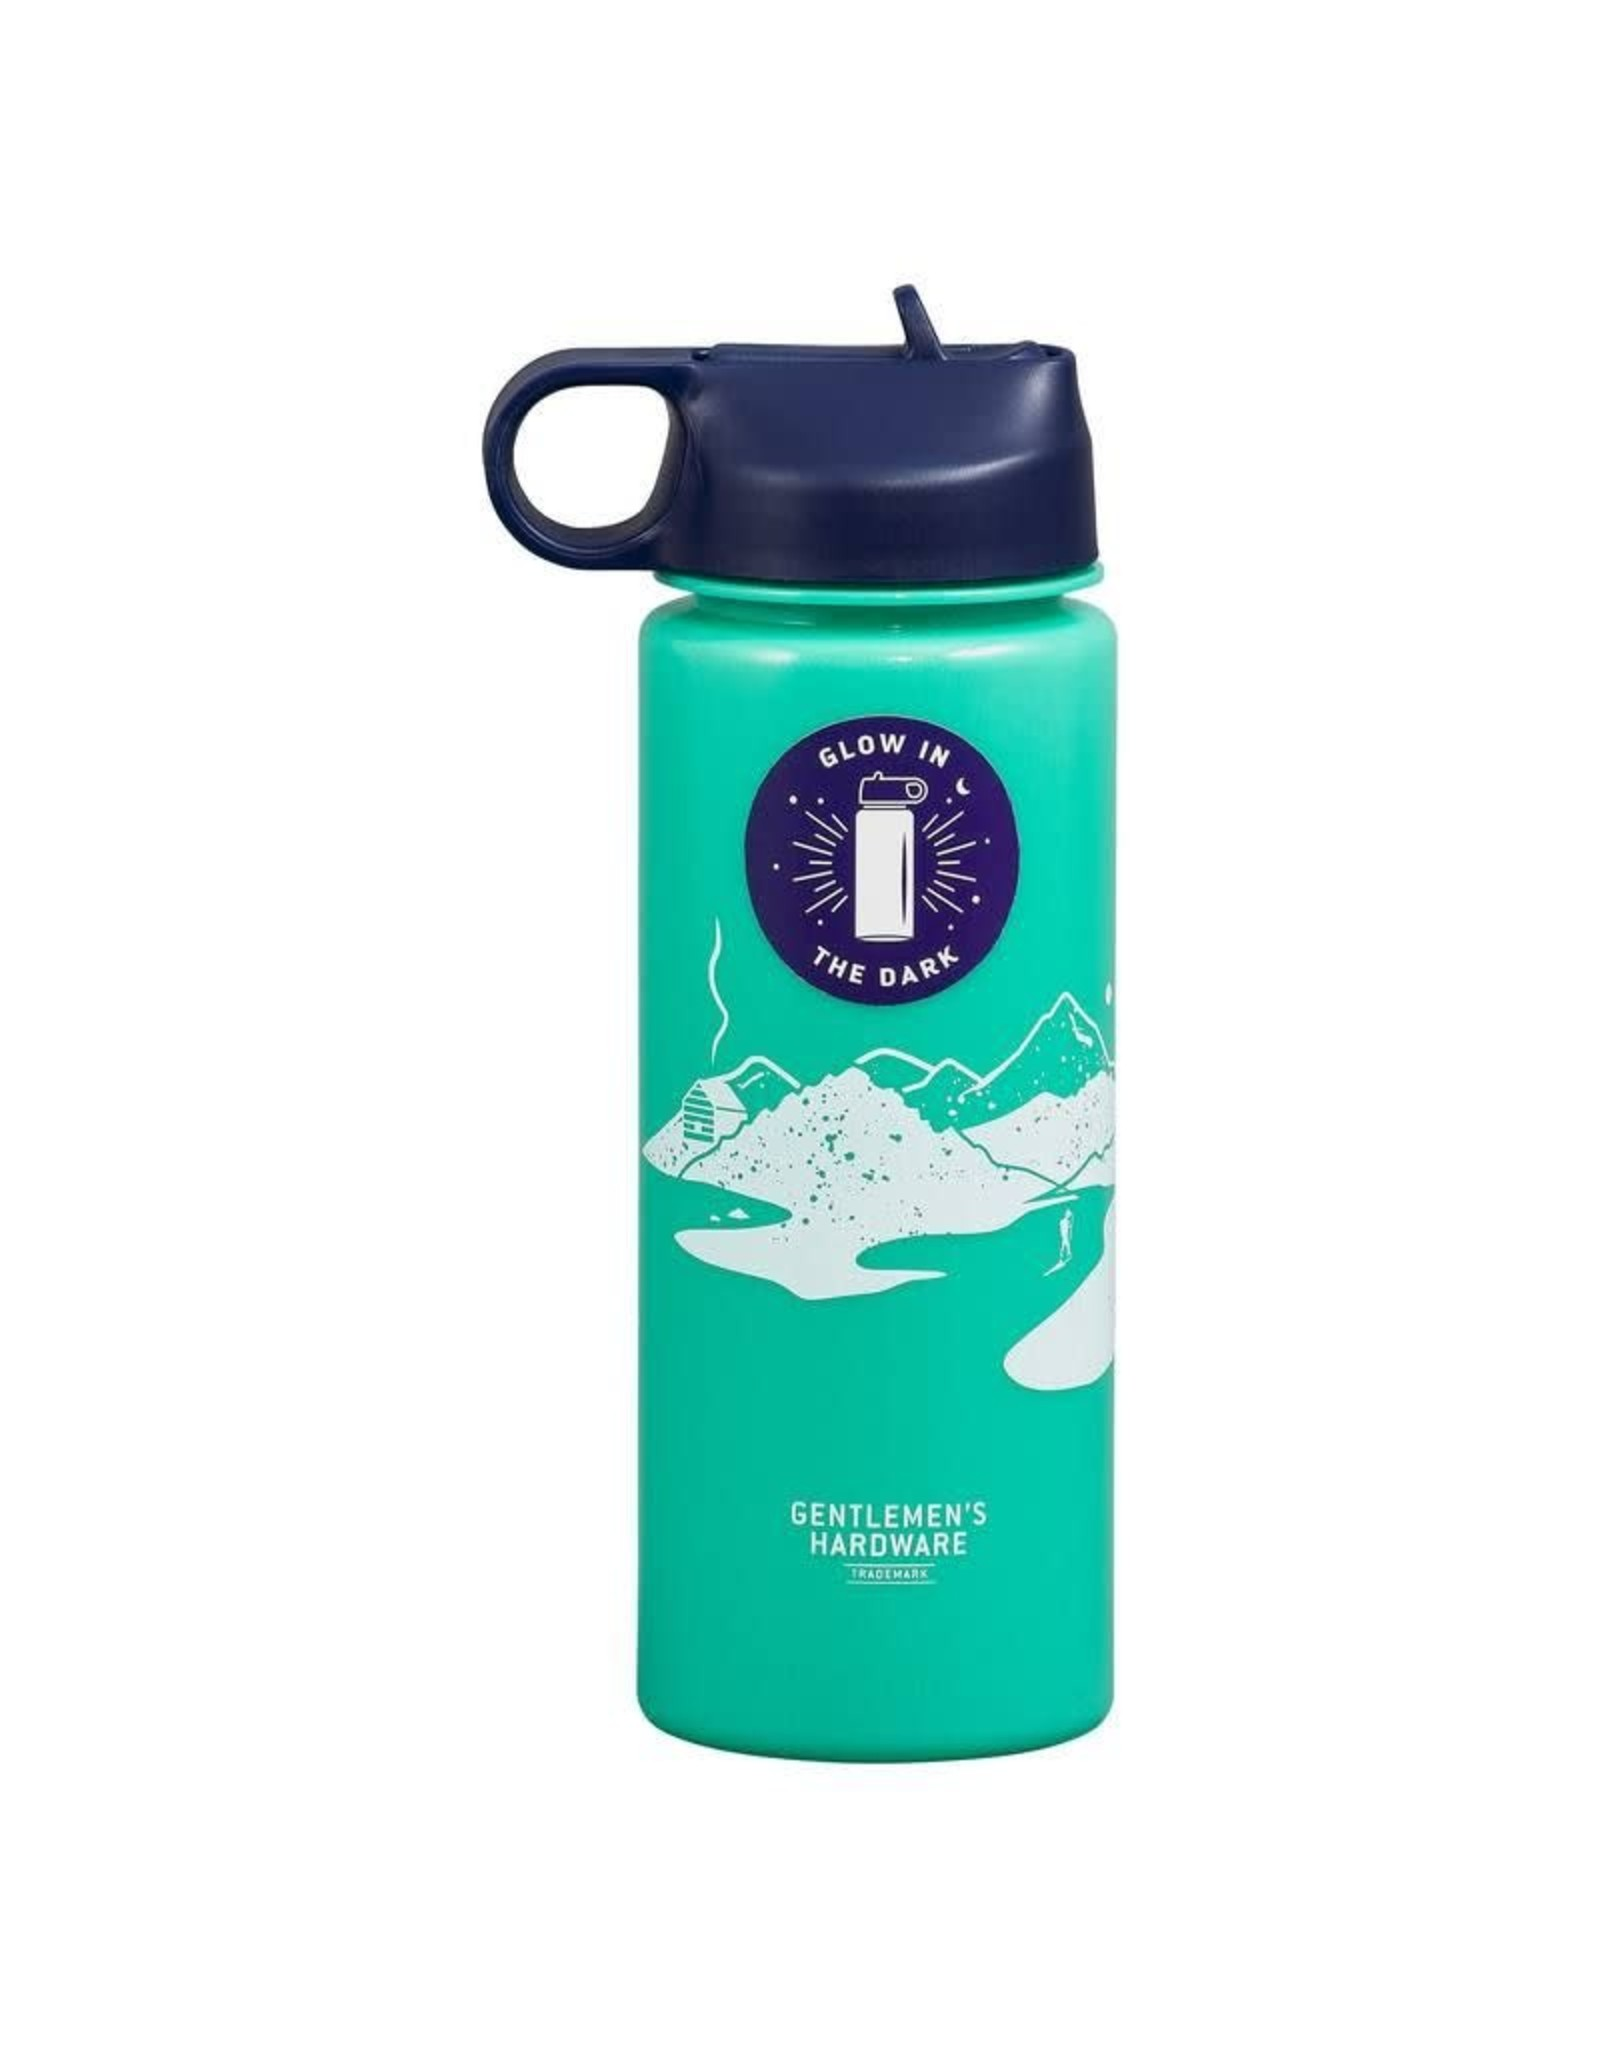 Gentlemen's Hardware Glow In The Dark Water Bottle - 700ml